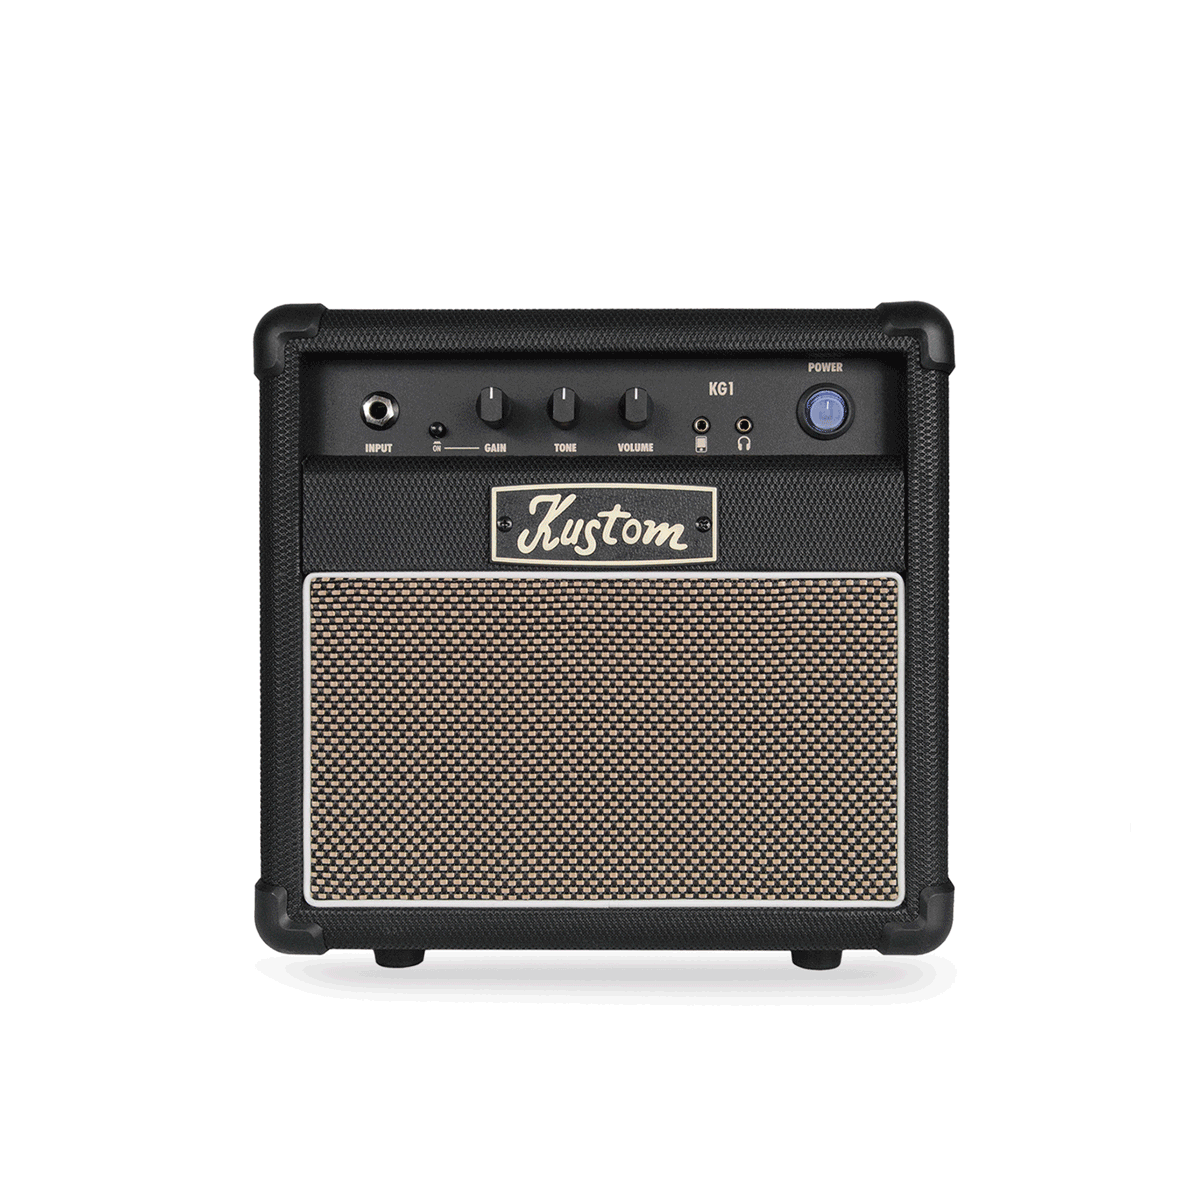 Kustom KG1 10-Watt 1 x 6 Guitar Combo w/ Gain Switch Aux In and Headphone Out